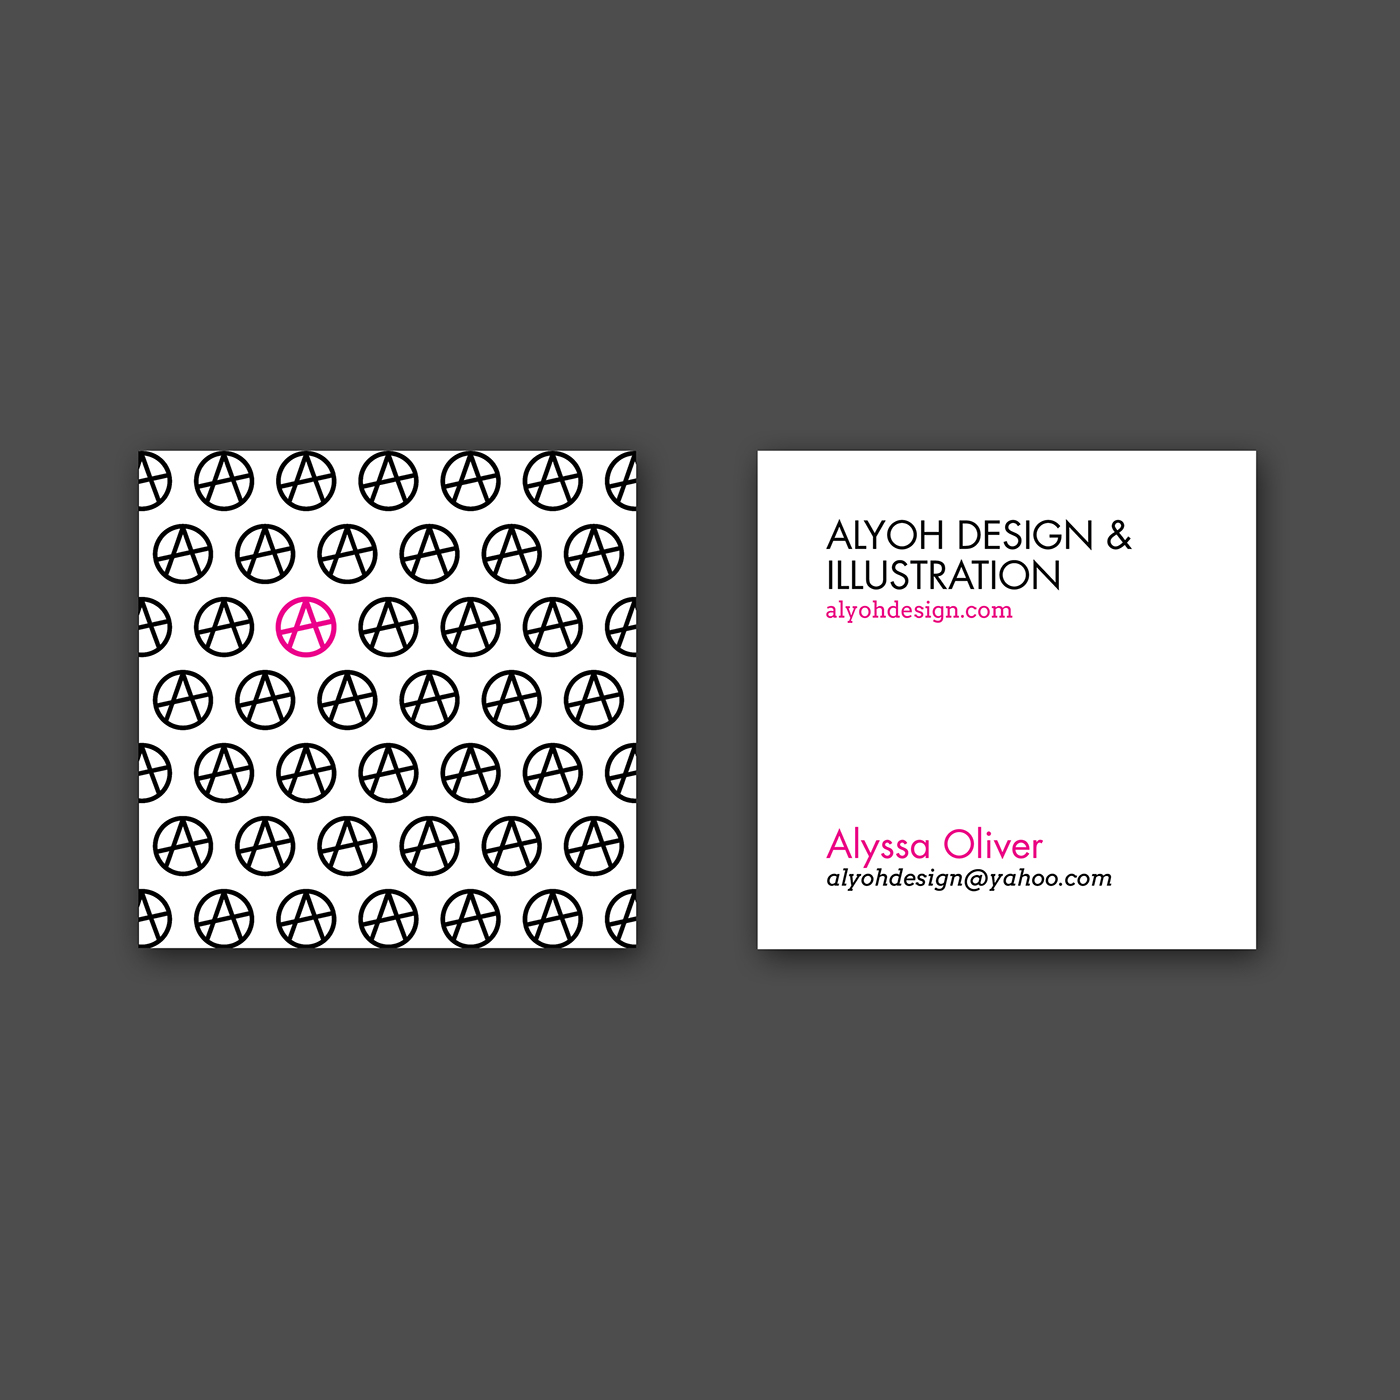 AlyOh Design Business Cards on Behance